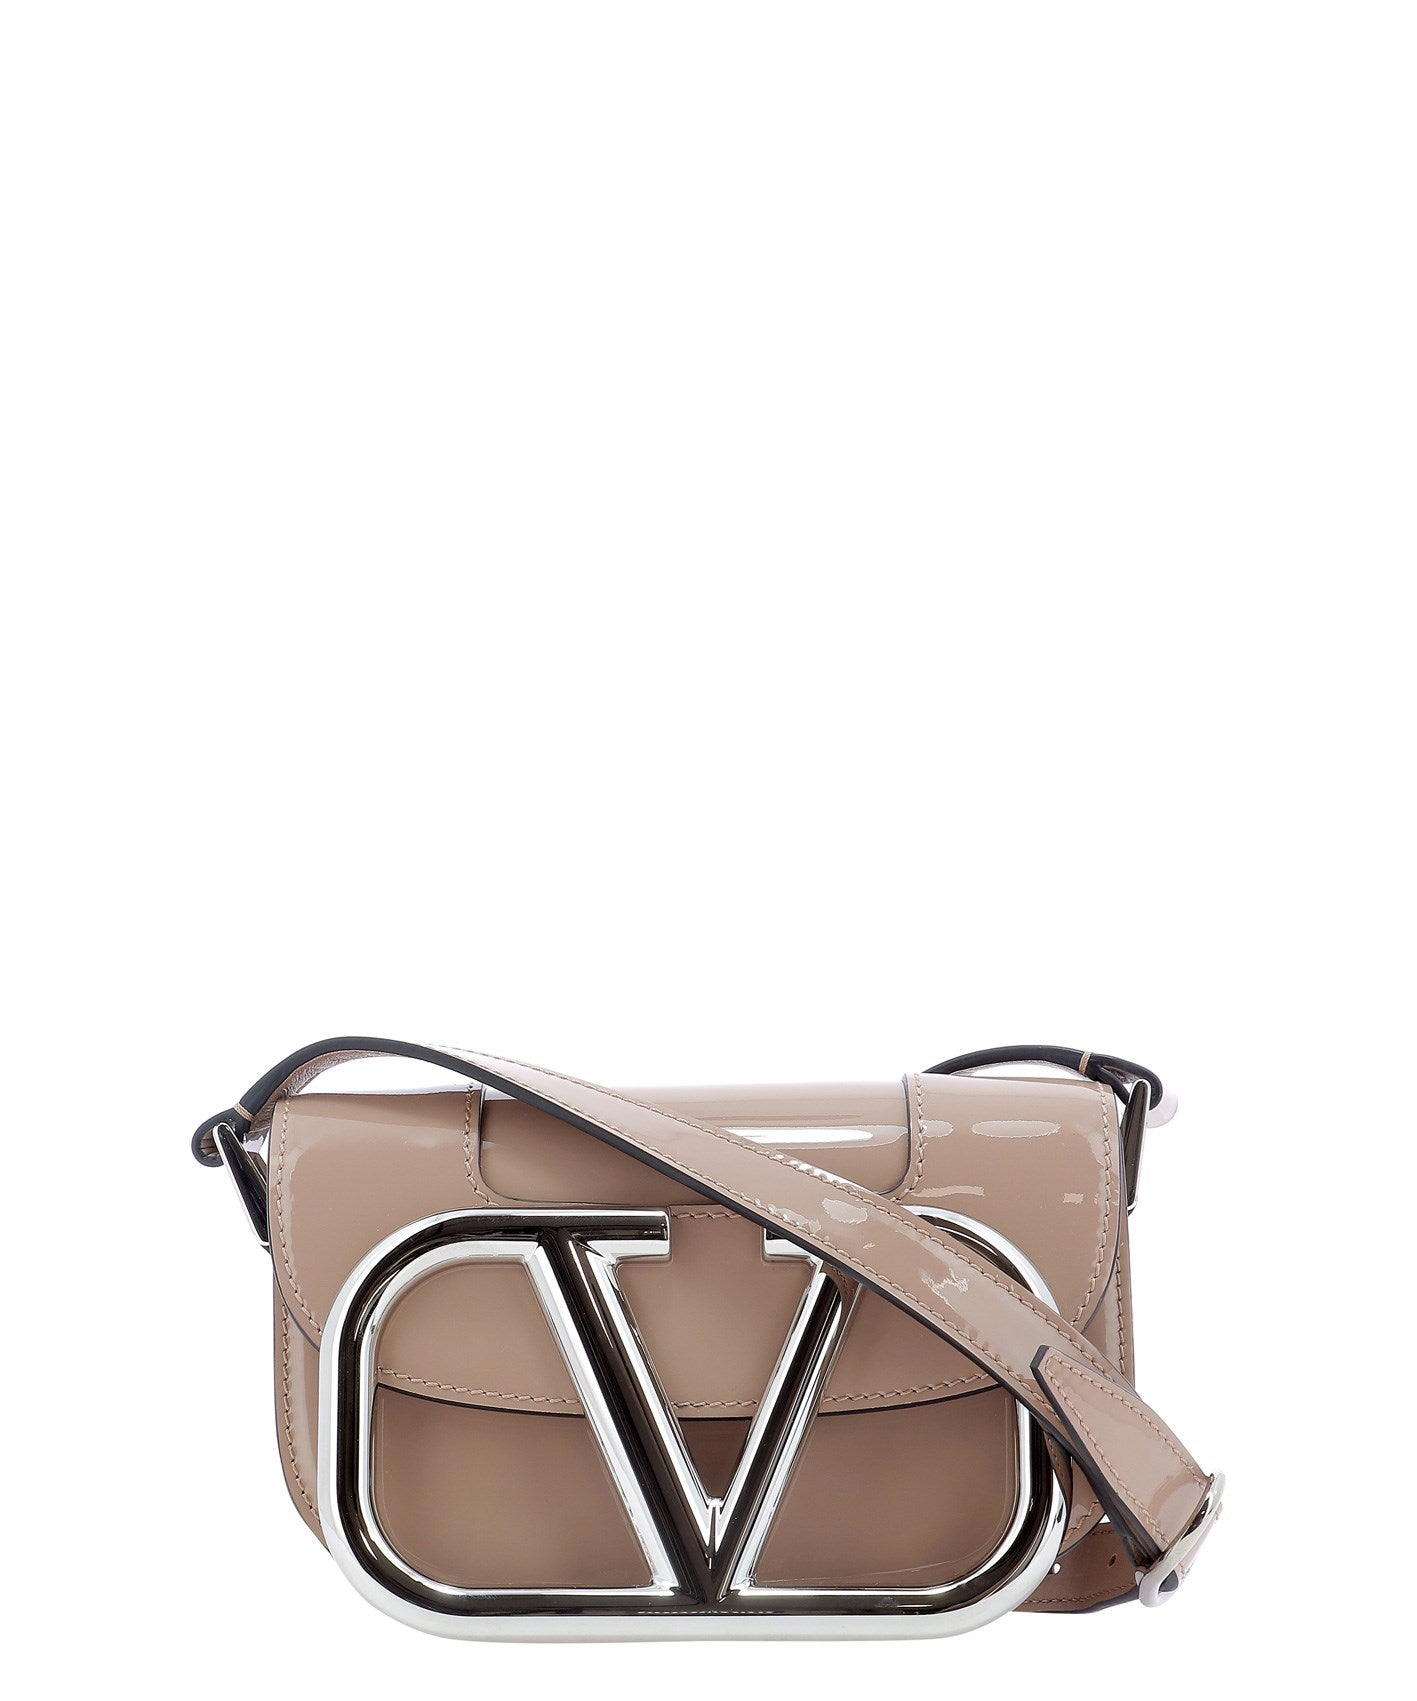 Valentino VALENTINO SUPERVEE SHOULDER BAG